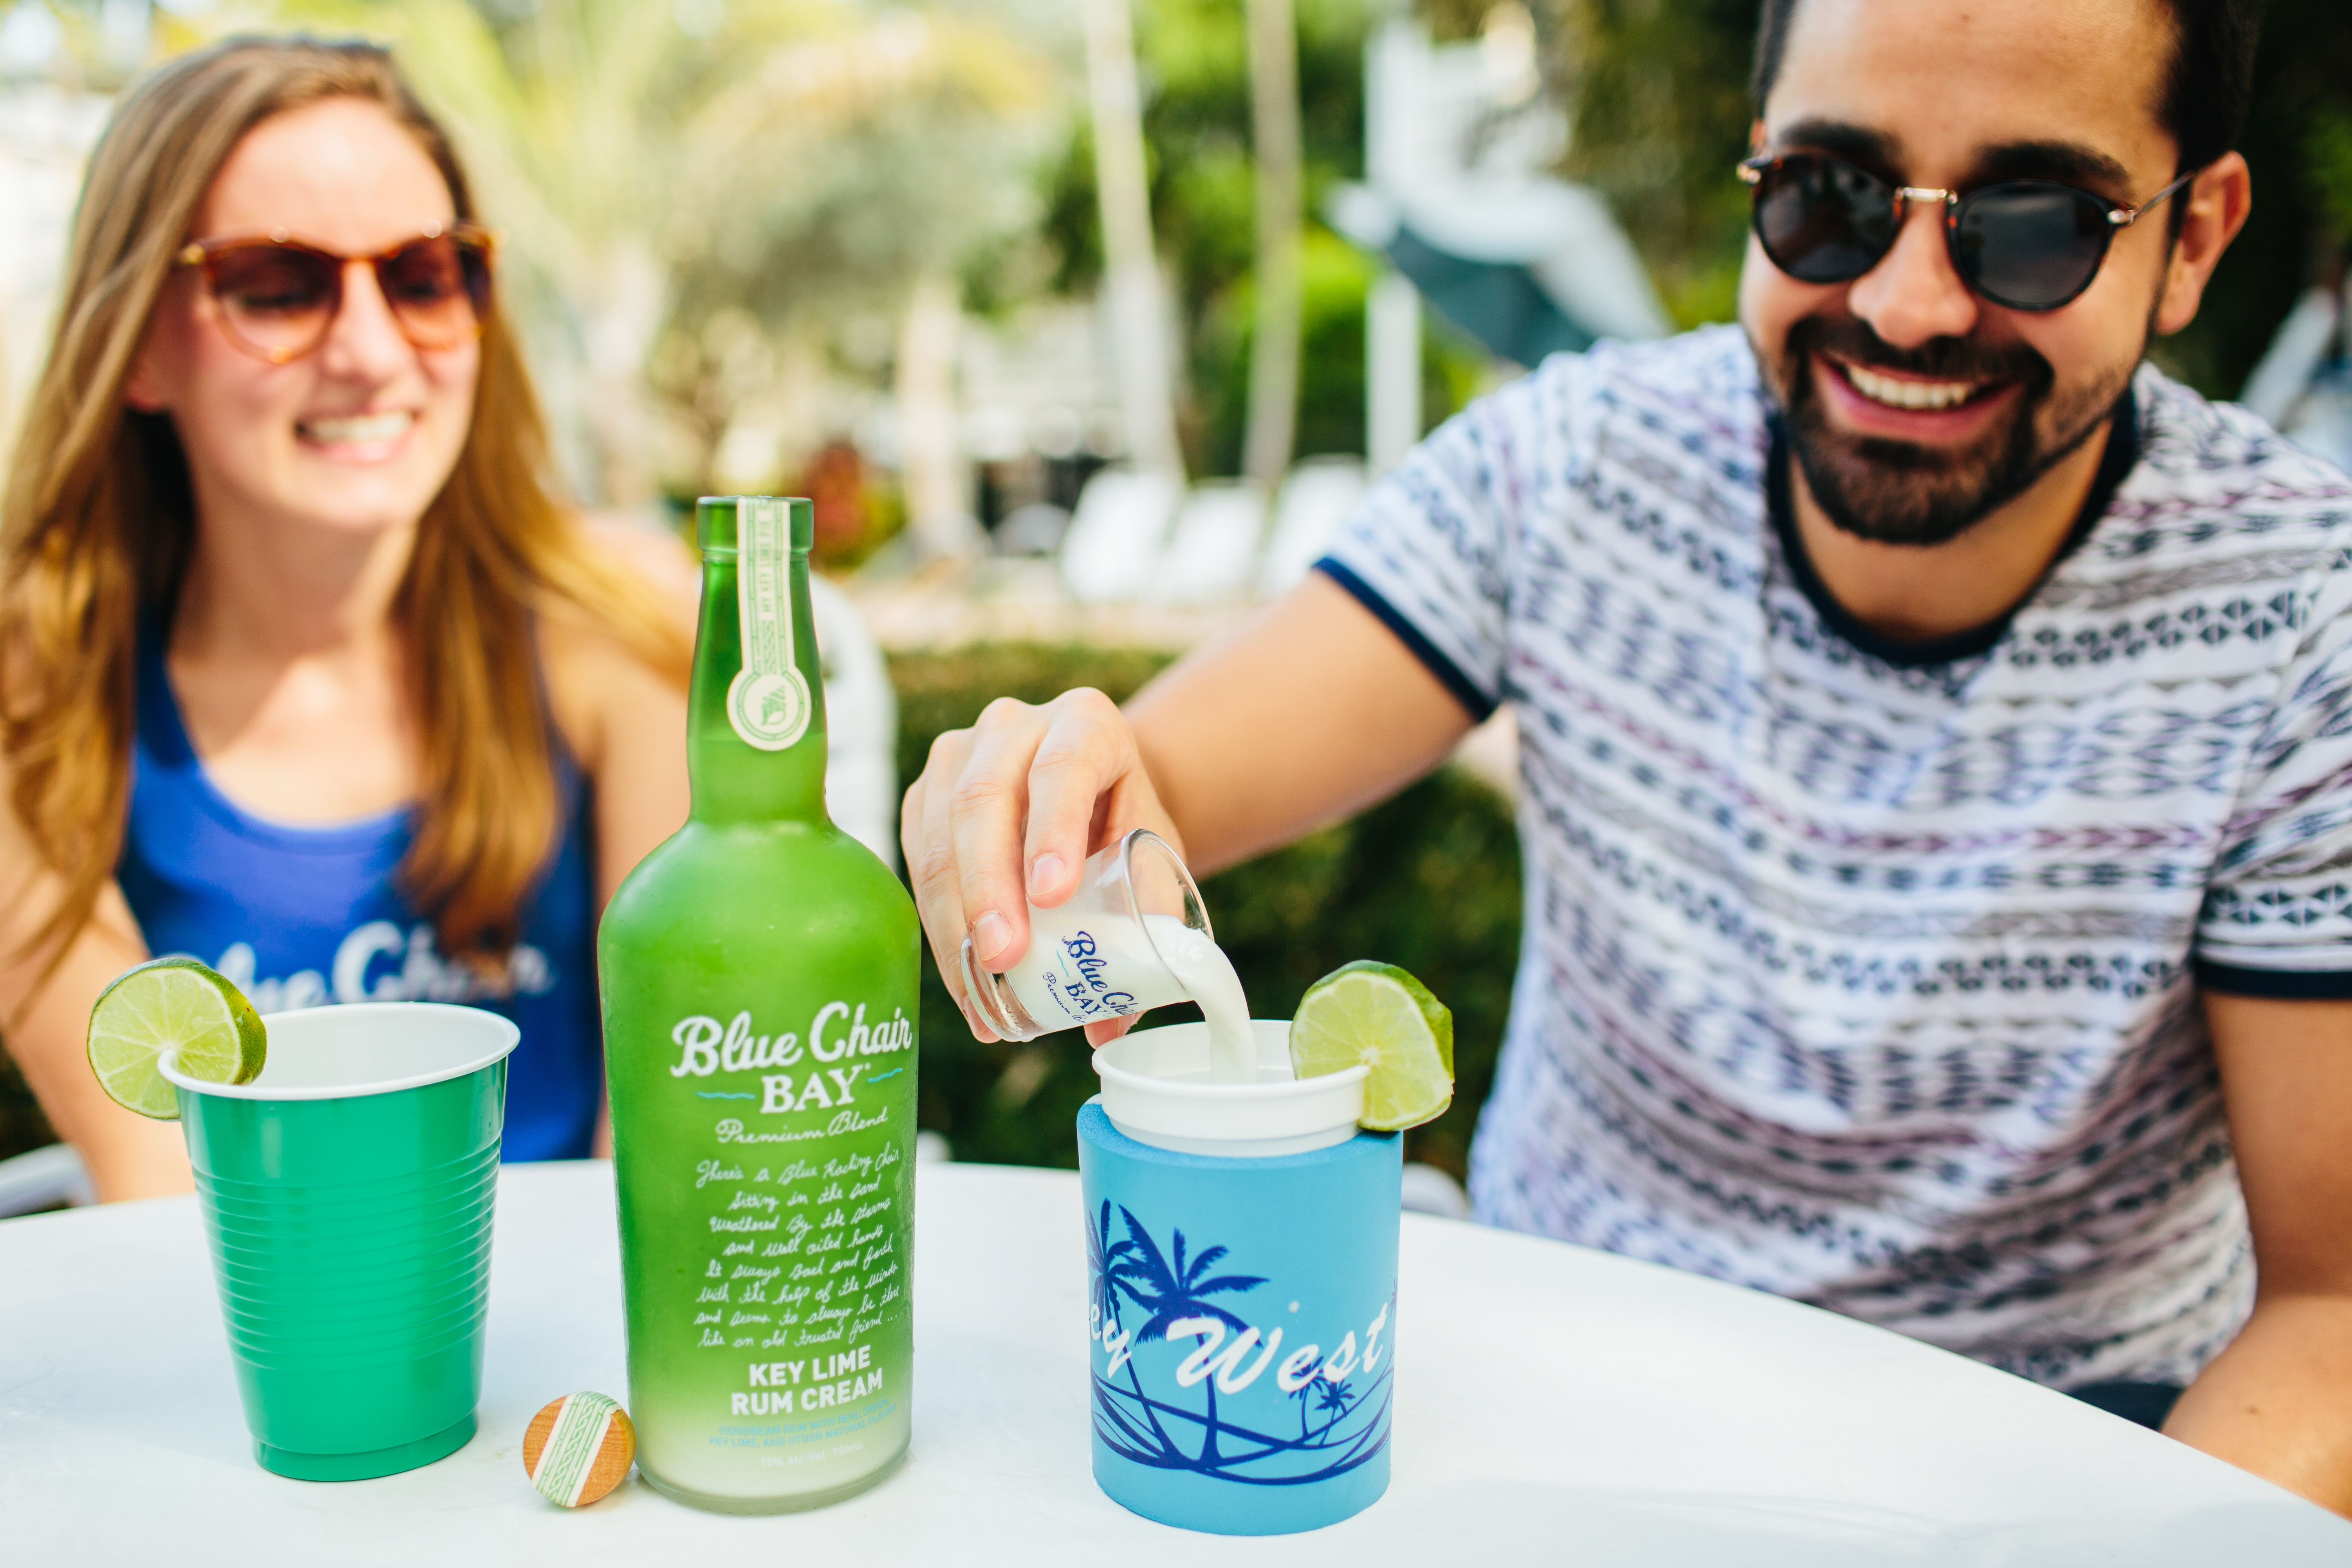 Fizzy lime cocktail 15 oz blue chair bay key lime rum